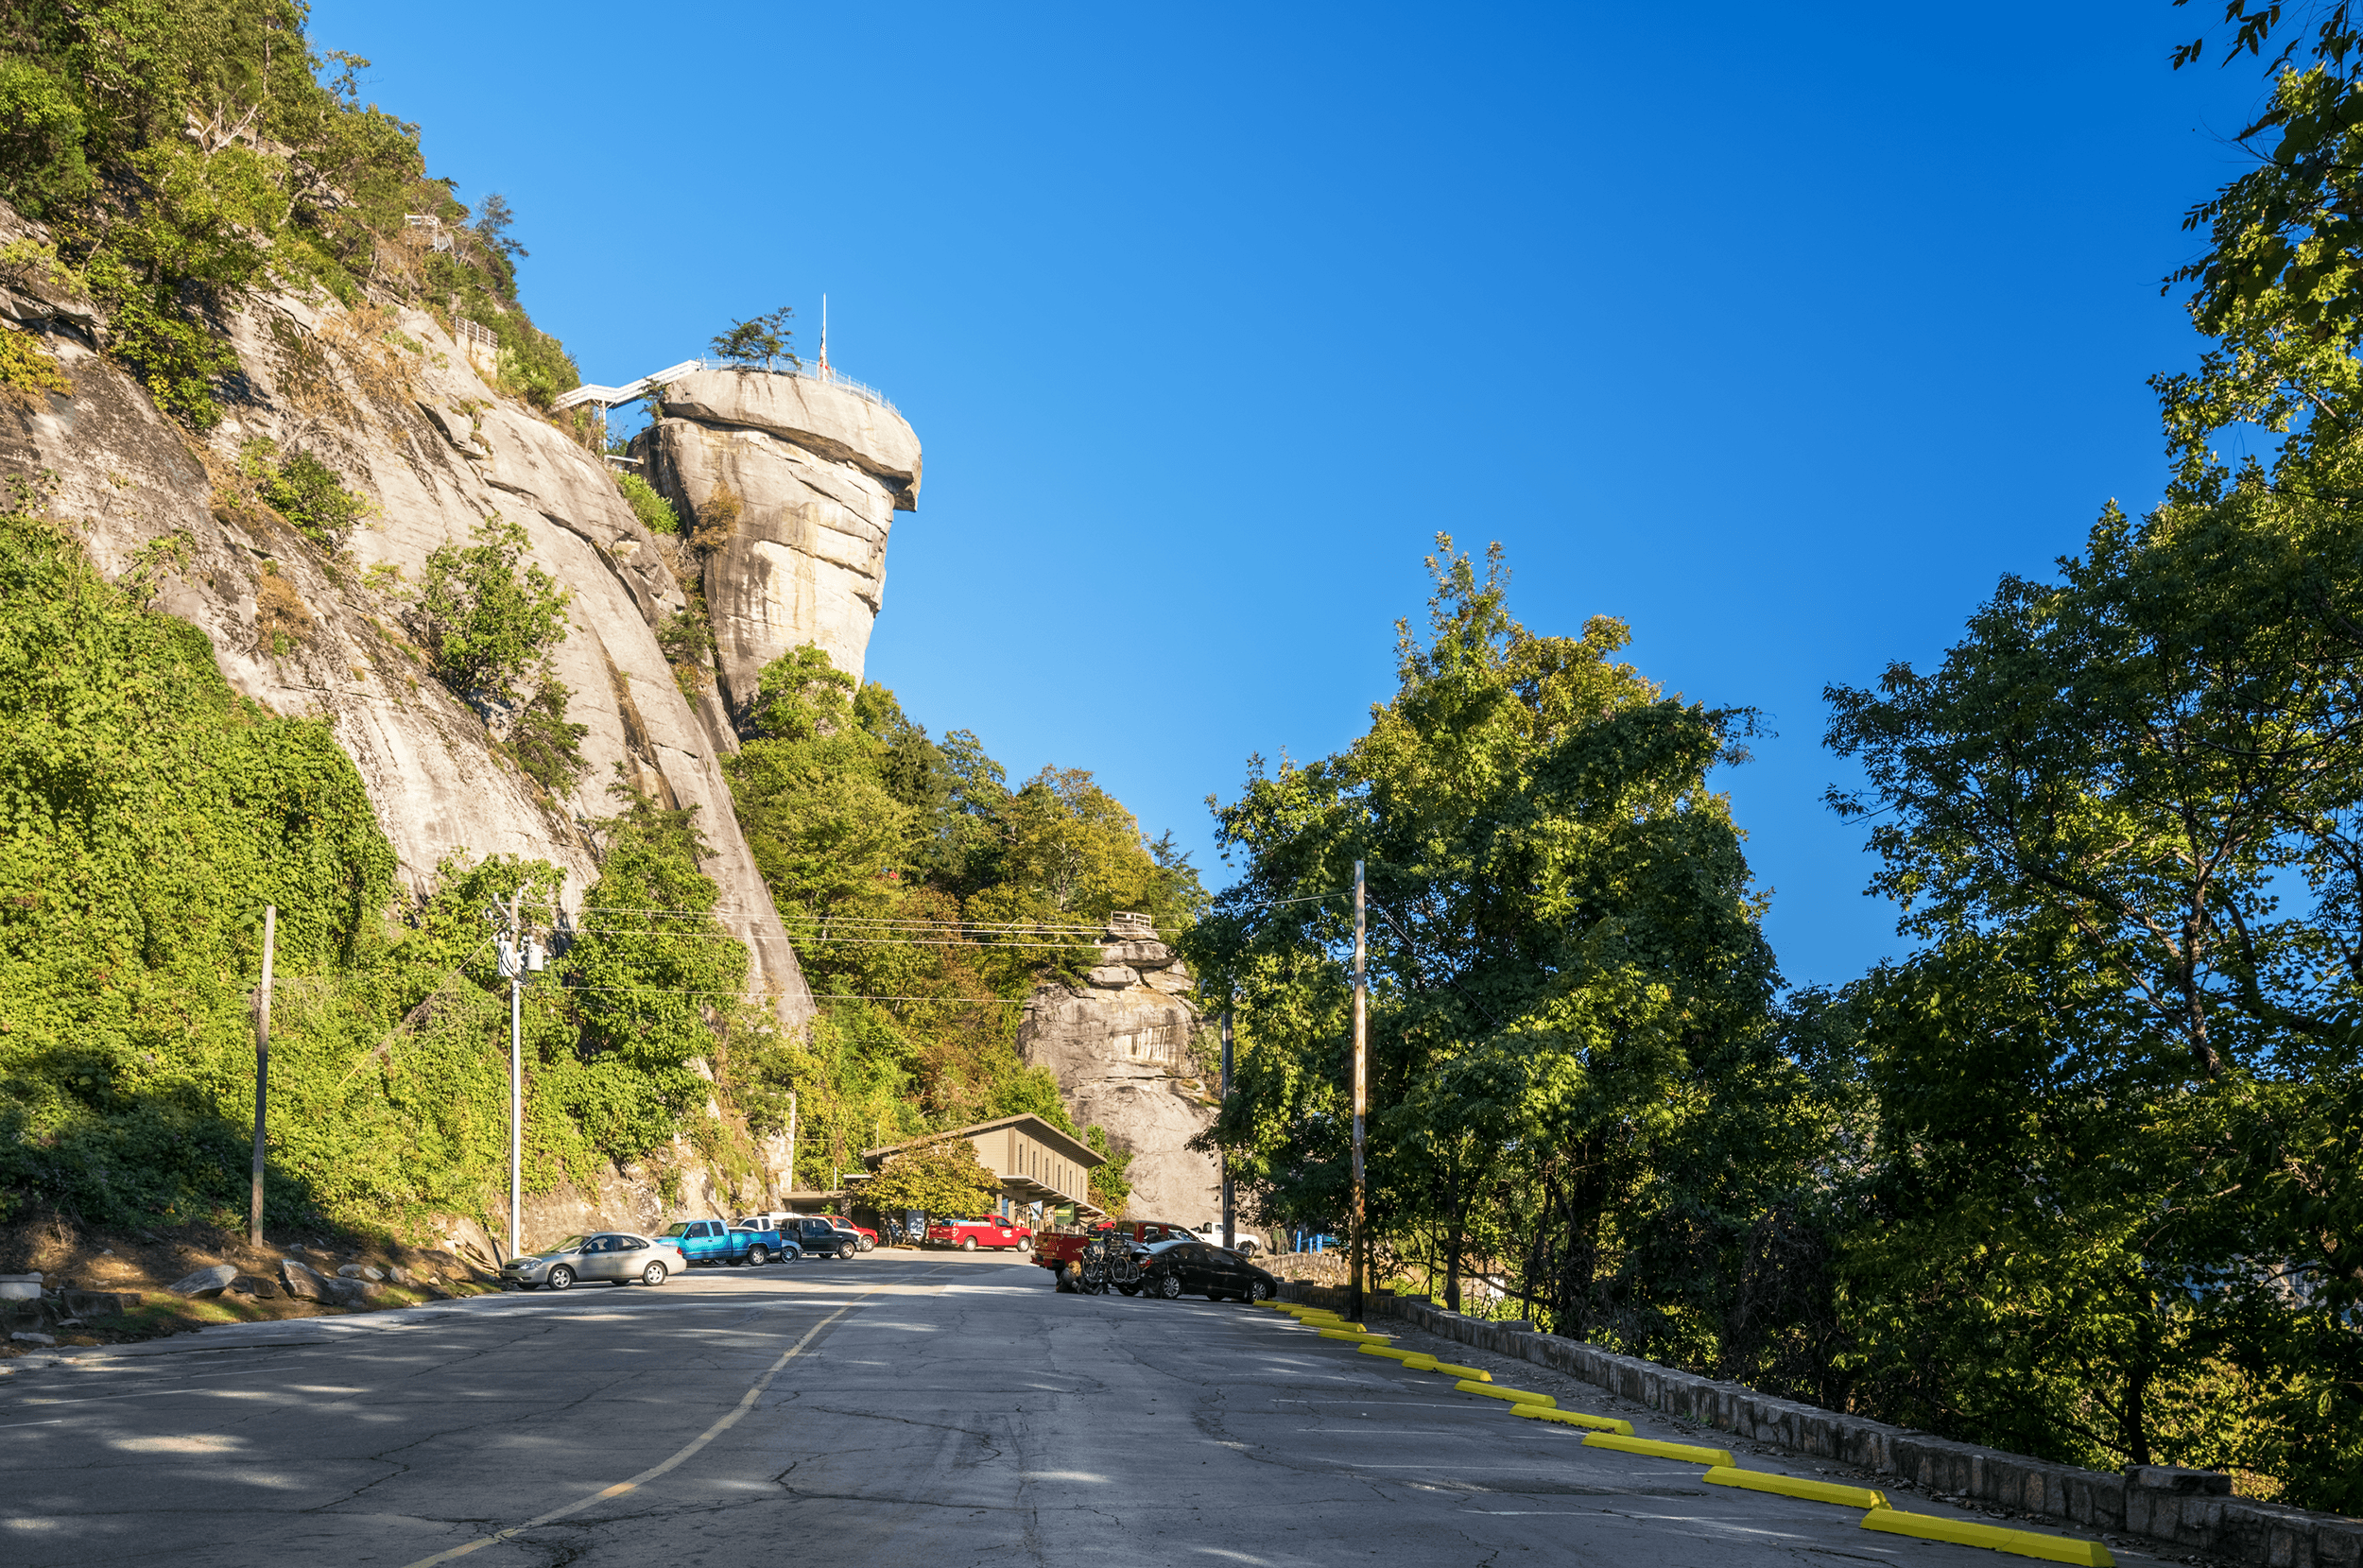 When you arrive at the parking area of  Chimney Rock Park , you are greeted by the mighty  Chimney Rock  towering high above the granite cliff.